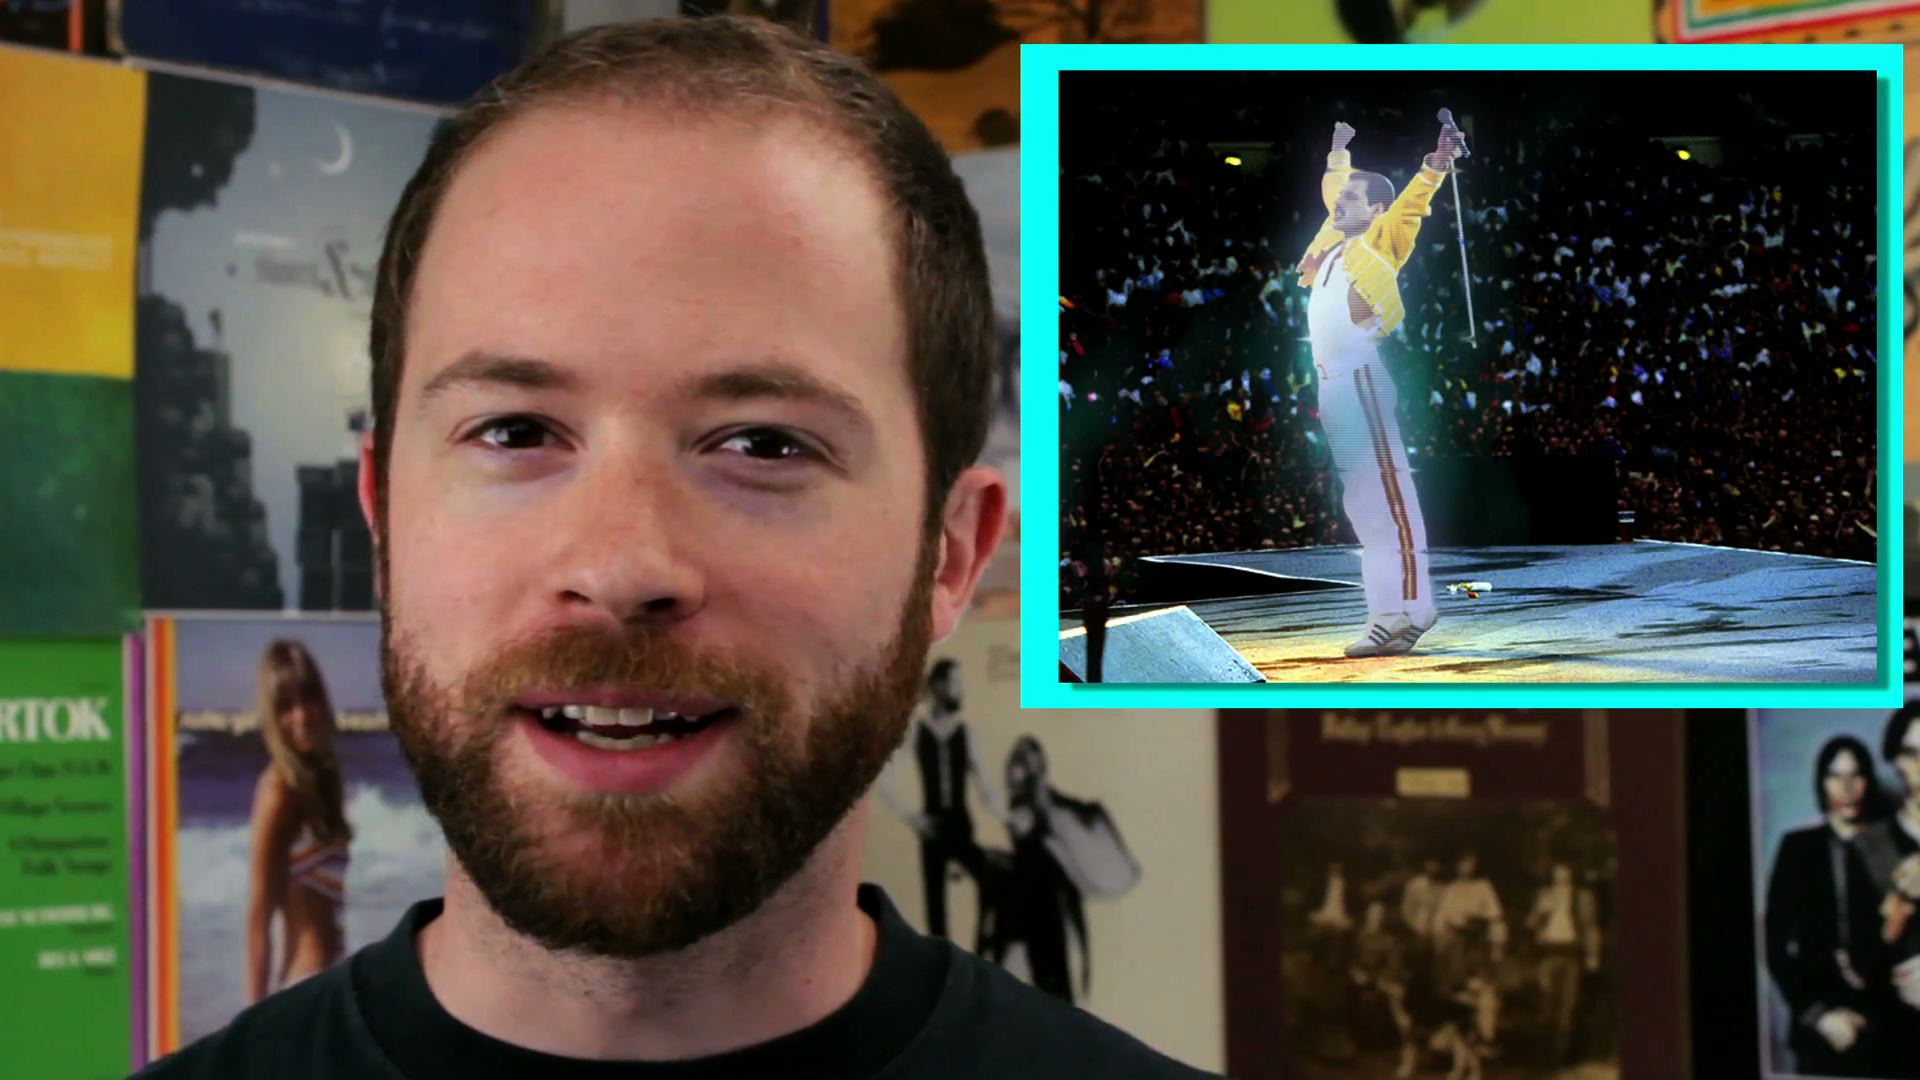 Idea Channel: Are Holograms Nostalgia or a New Form of Art?